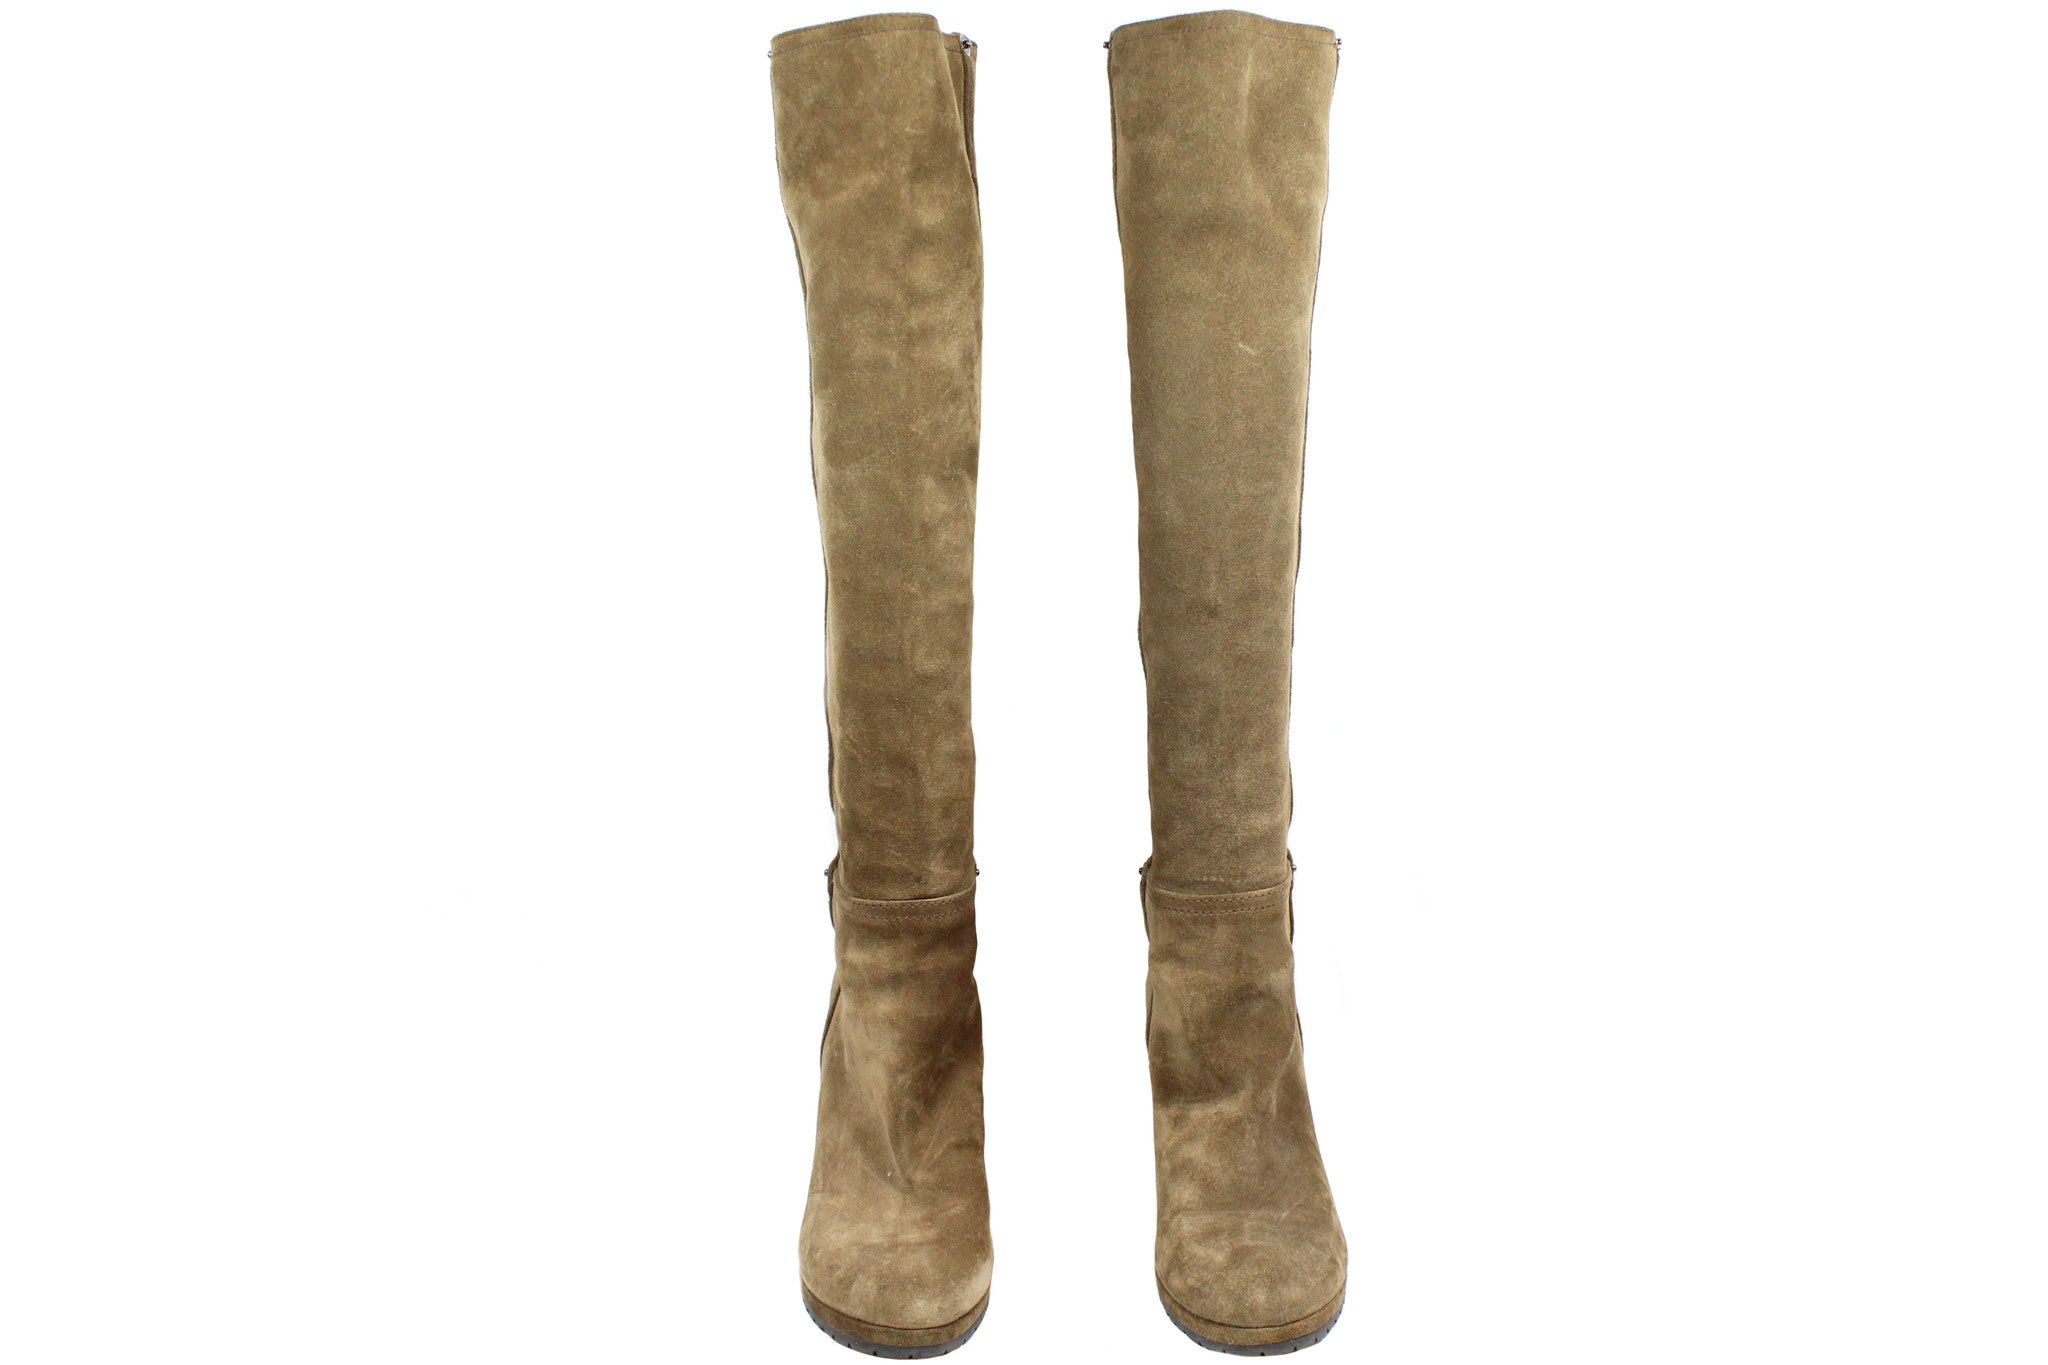 Prada Suede Taupe Wedge Boots (Size 38) - Encore Consignment - 2